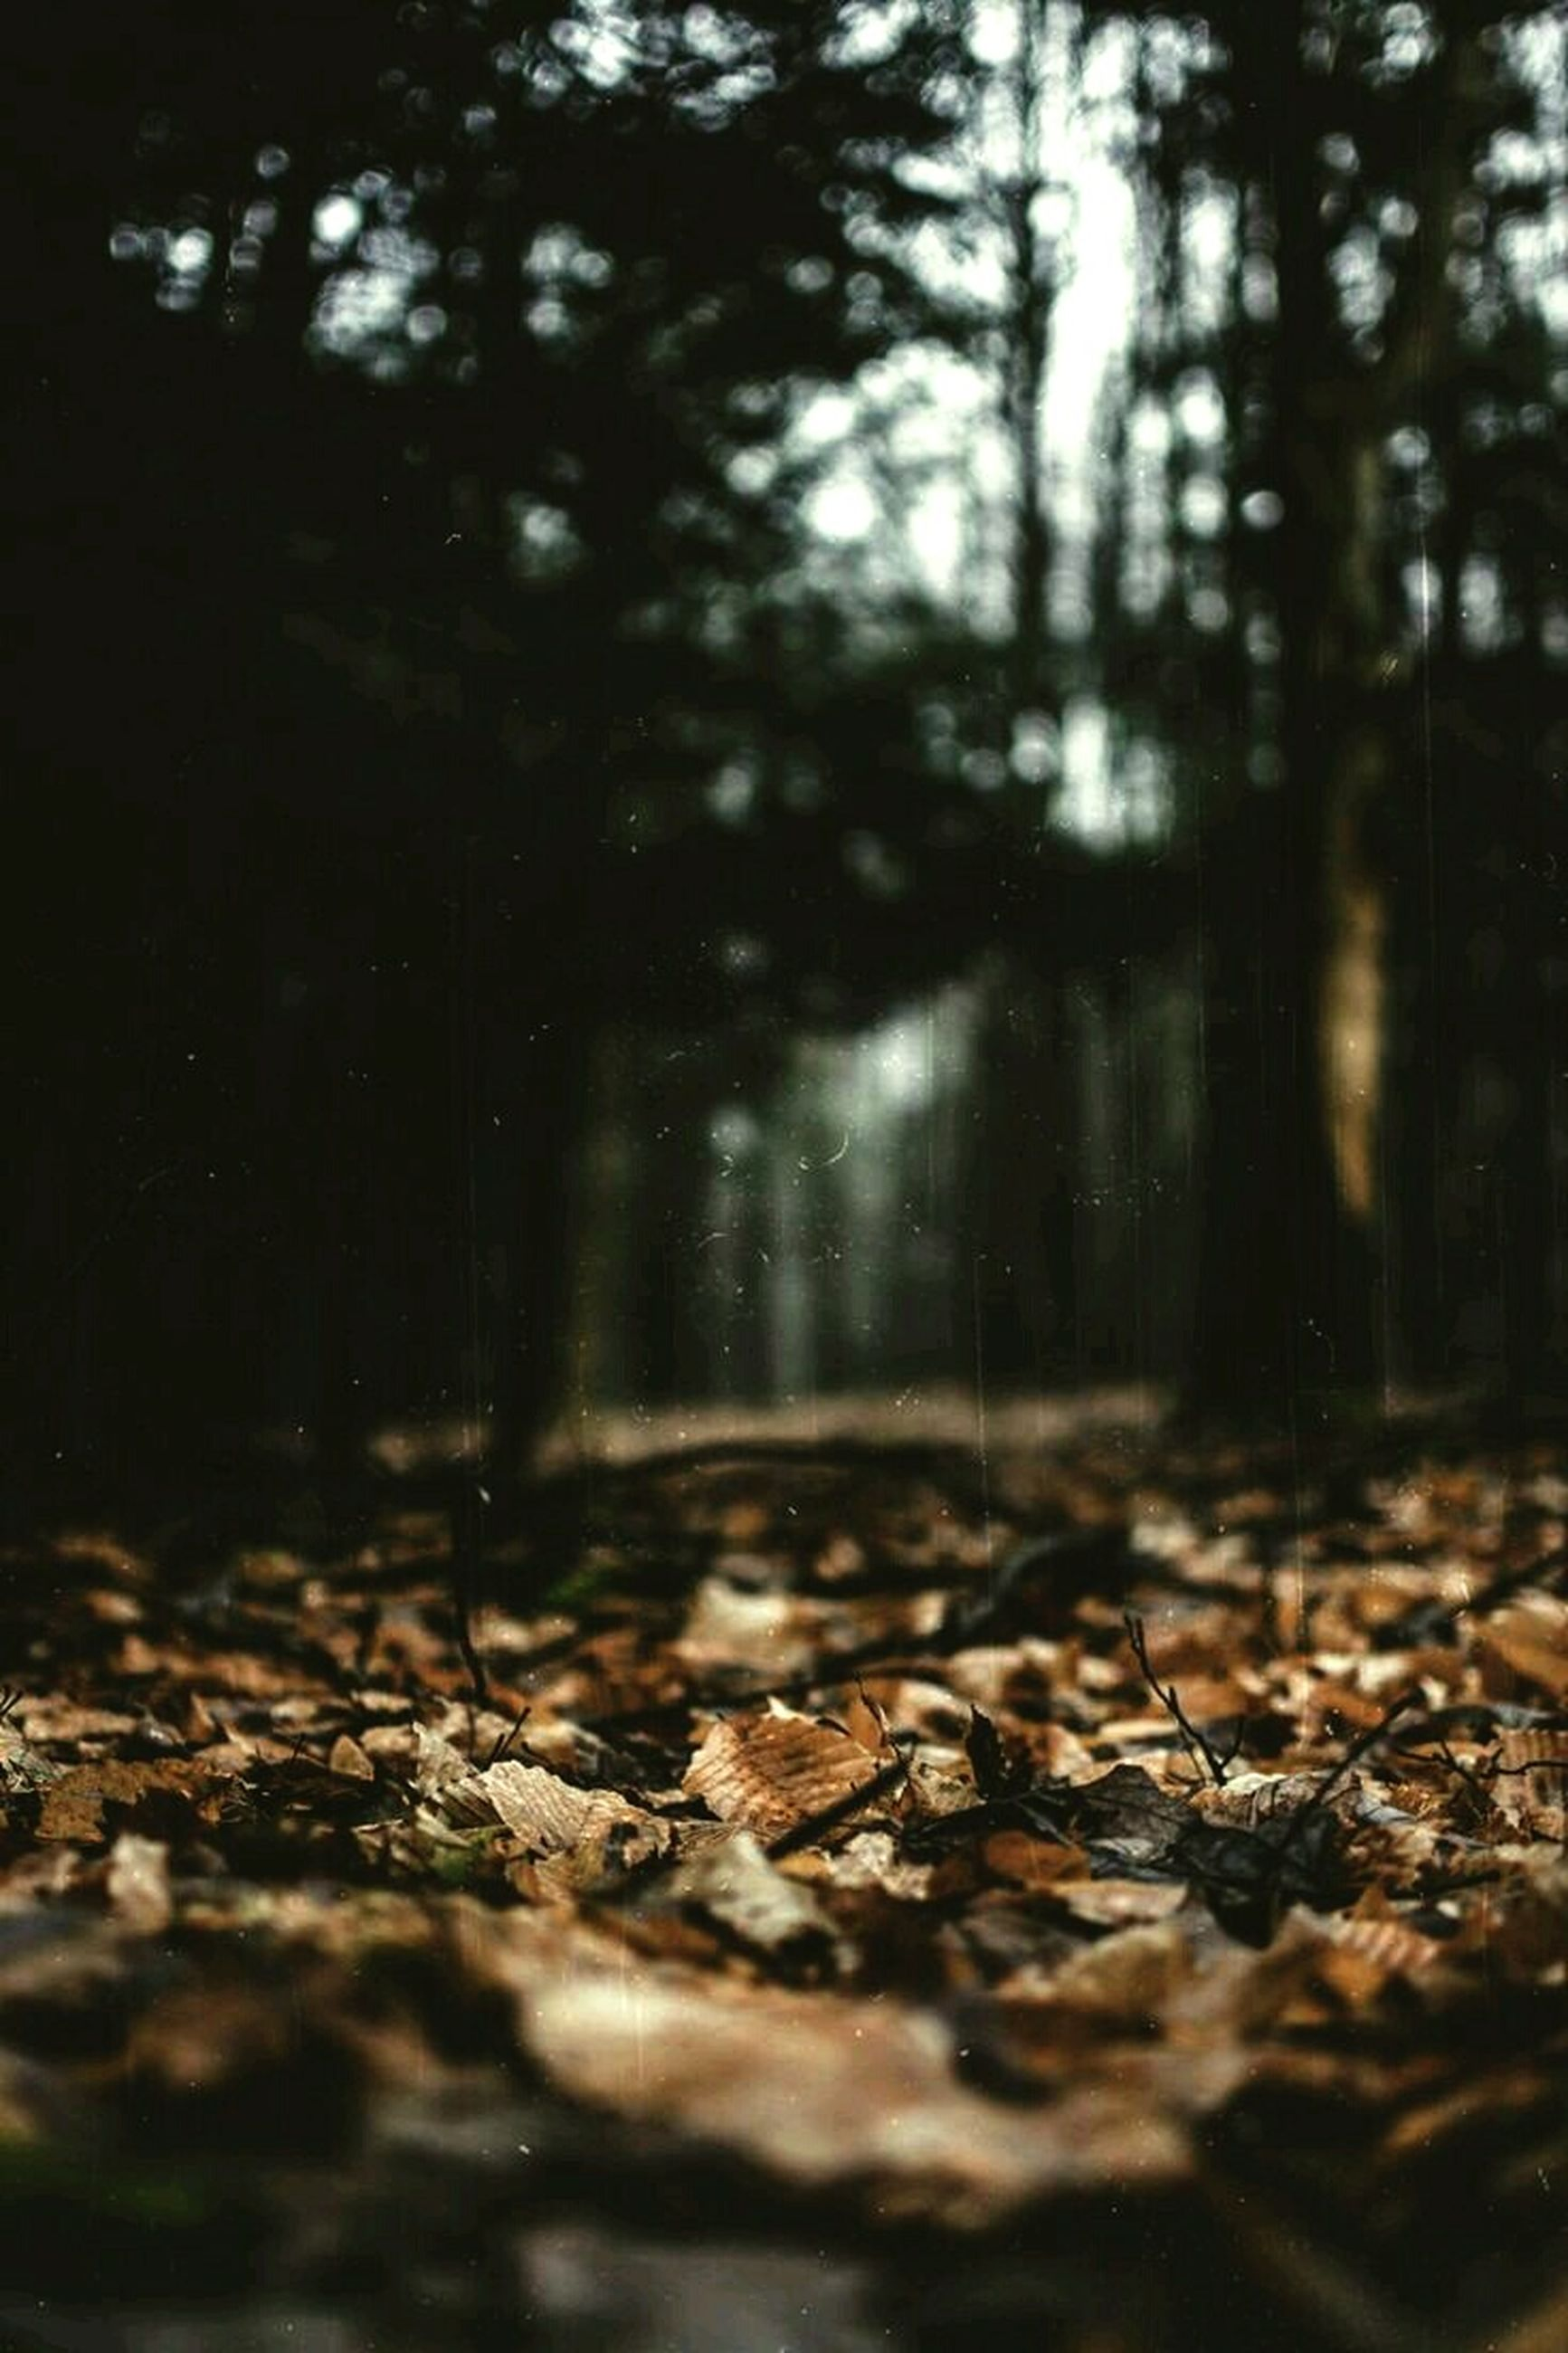 surface level, leaf, autumn, selective focus, fallen, leaves, tree, season, dry, nature, falling, the way forward, change, forest, tranquility, no people, outdoors, day, wet, beauty in nature